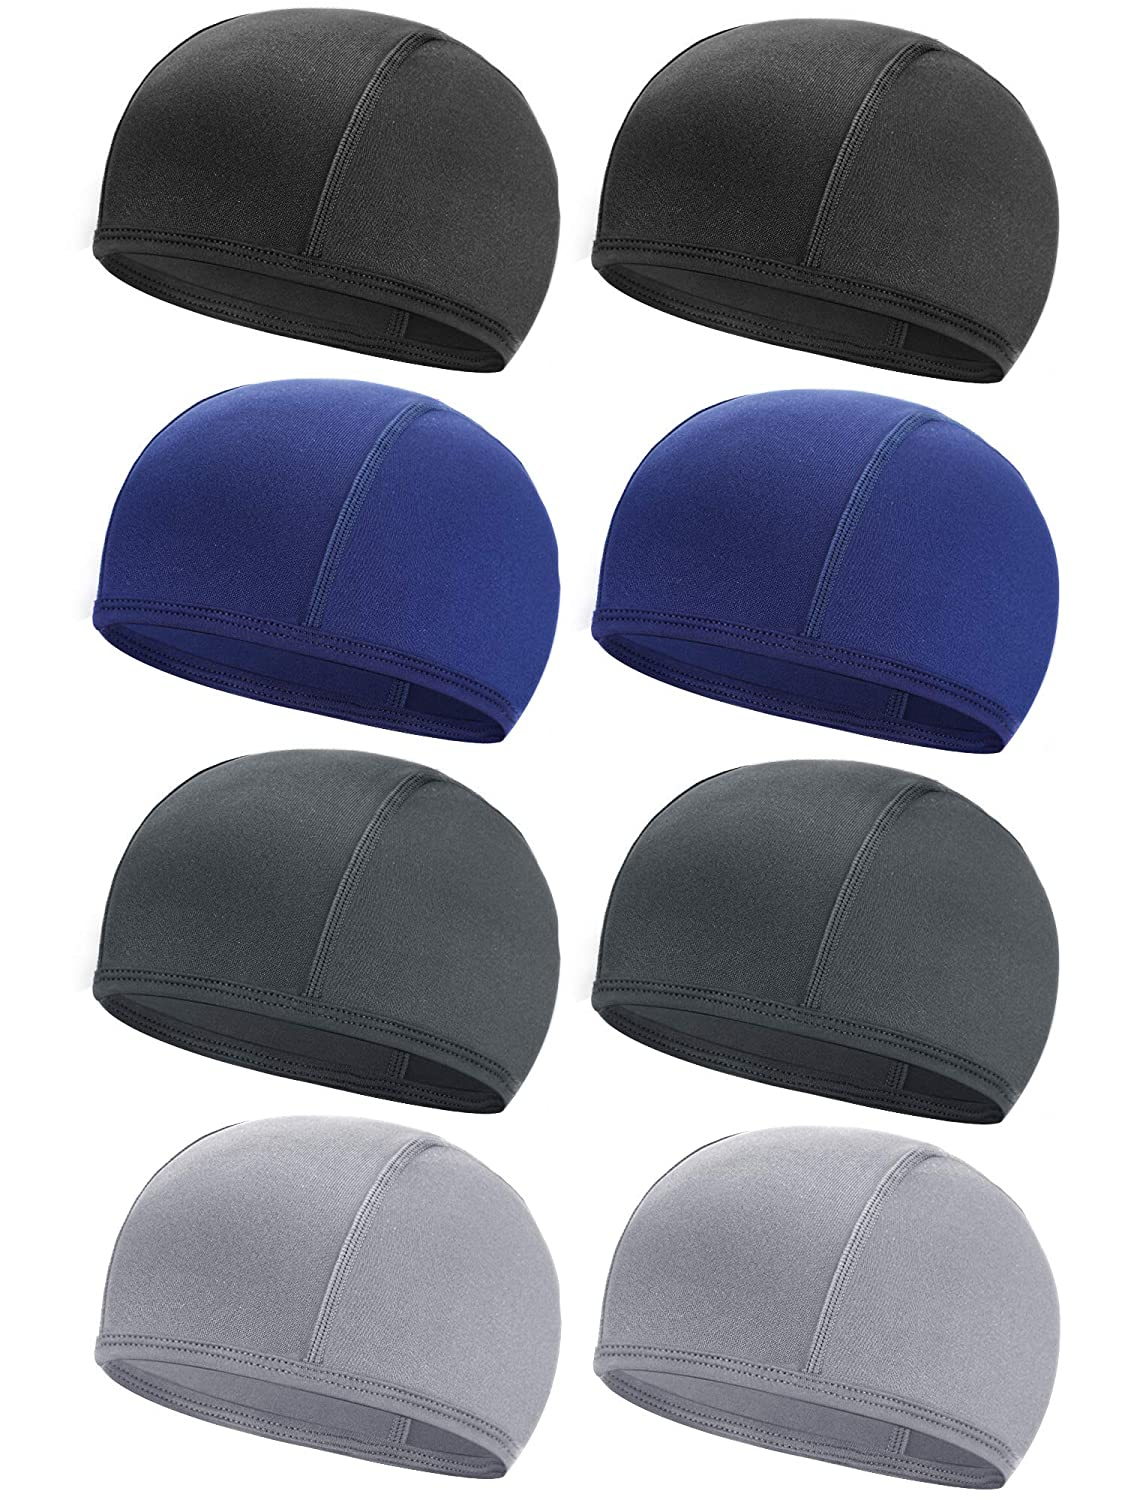 SATINIOR 8 Pieces Cycling Skull Cap Cooling Helmet Liner Sweat Wicking Cap Running Beanie Hats for Sports Exercise Using